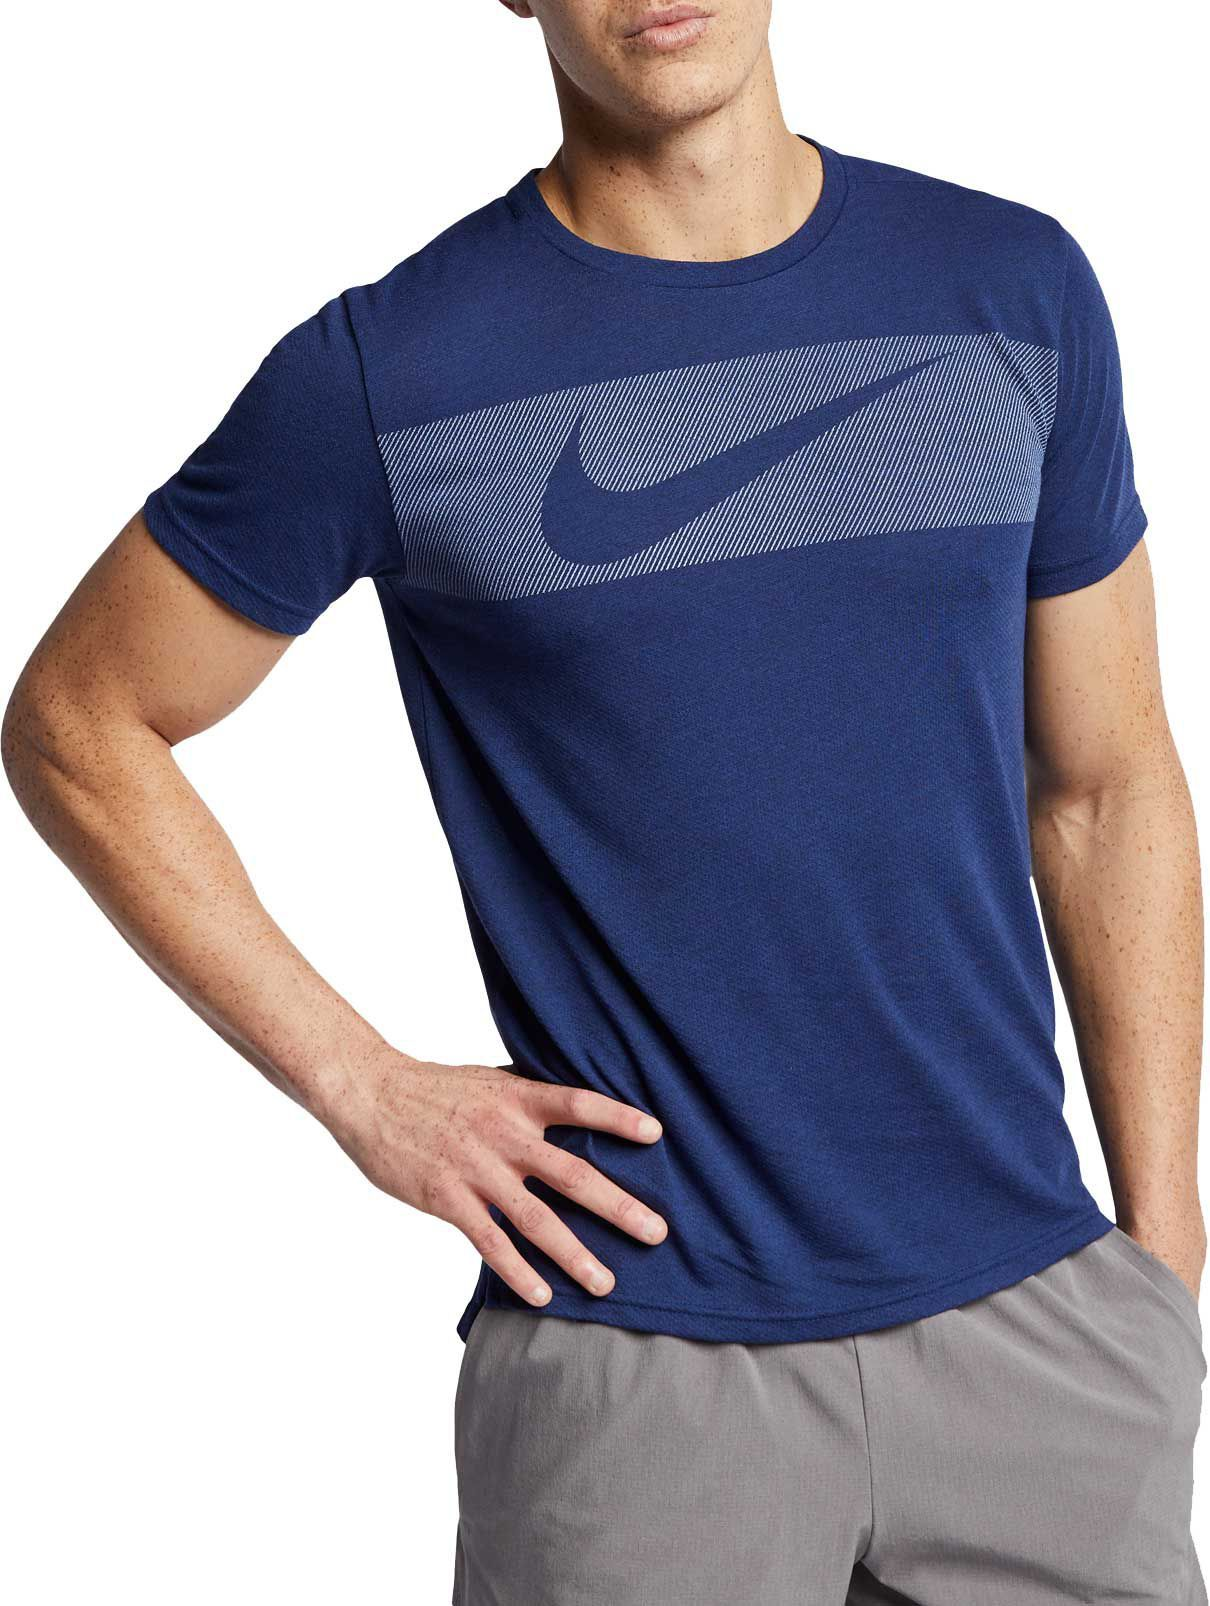 Nike Men S Hyper Dry Graphic Tee In 2020 Mens Tshirts Mens Workout Clothes Men Shirt Style